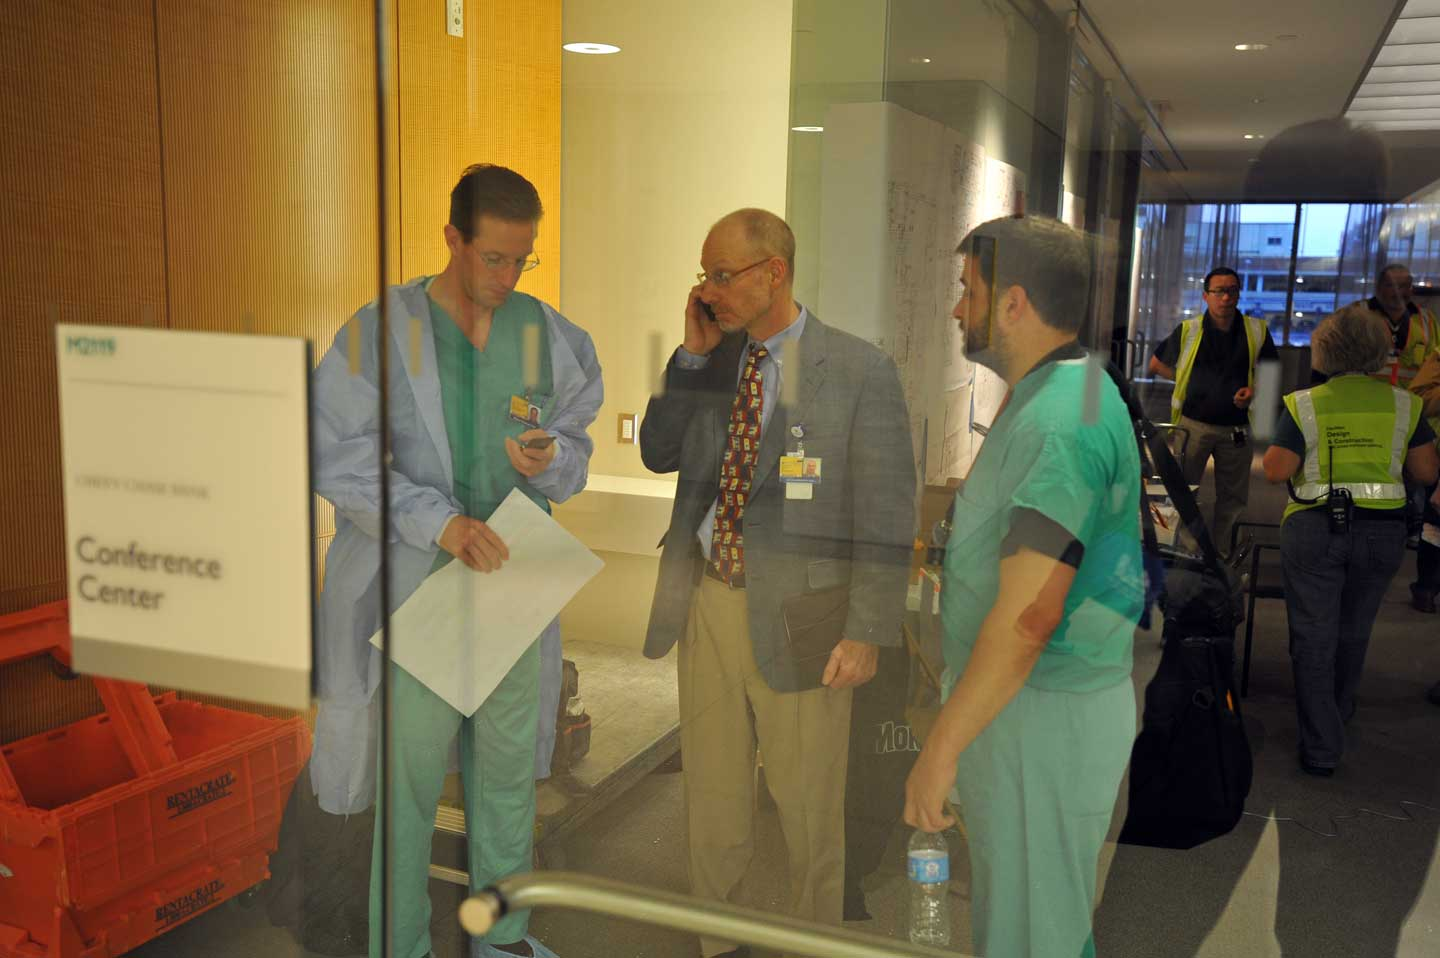 Clinicians take a moment to confer in the command center doorway.